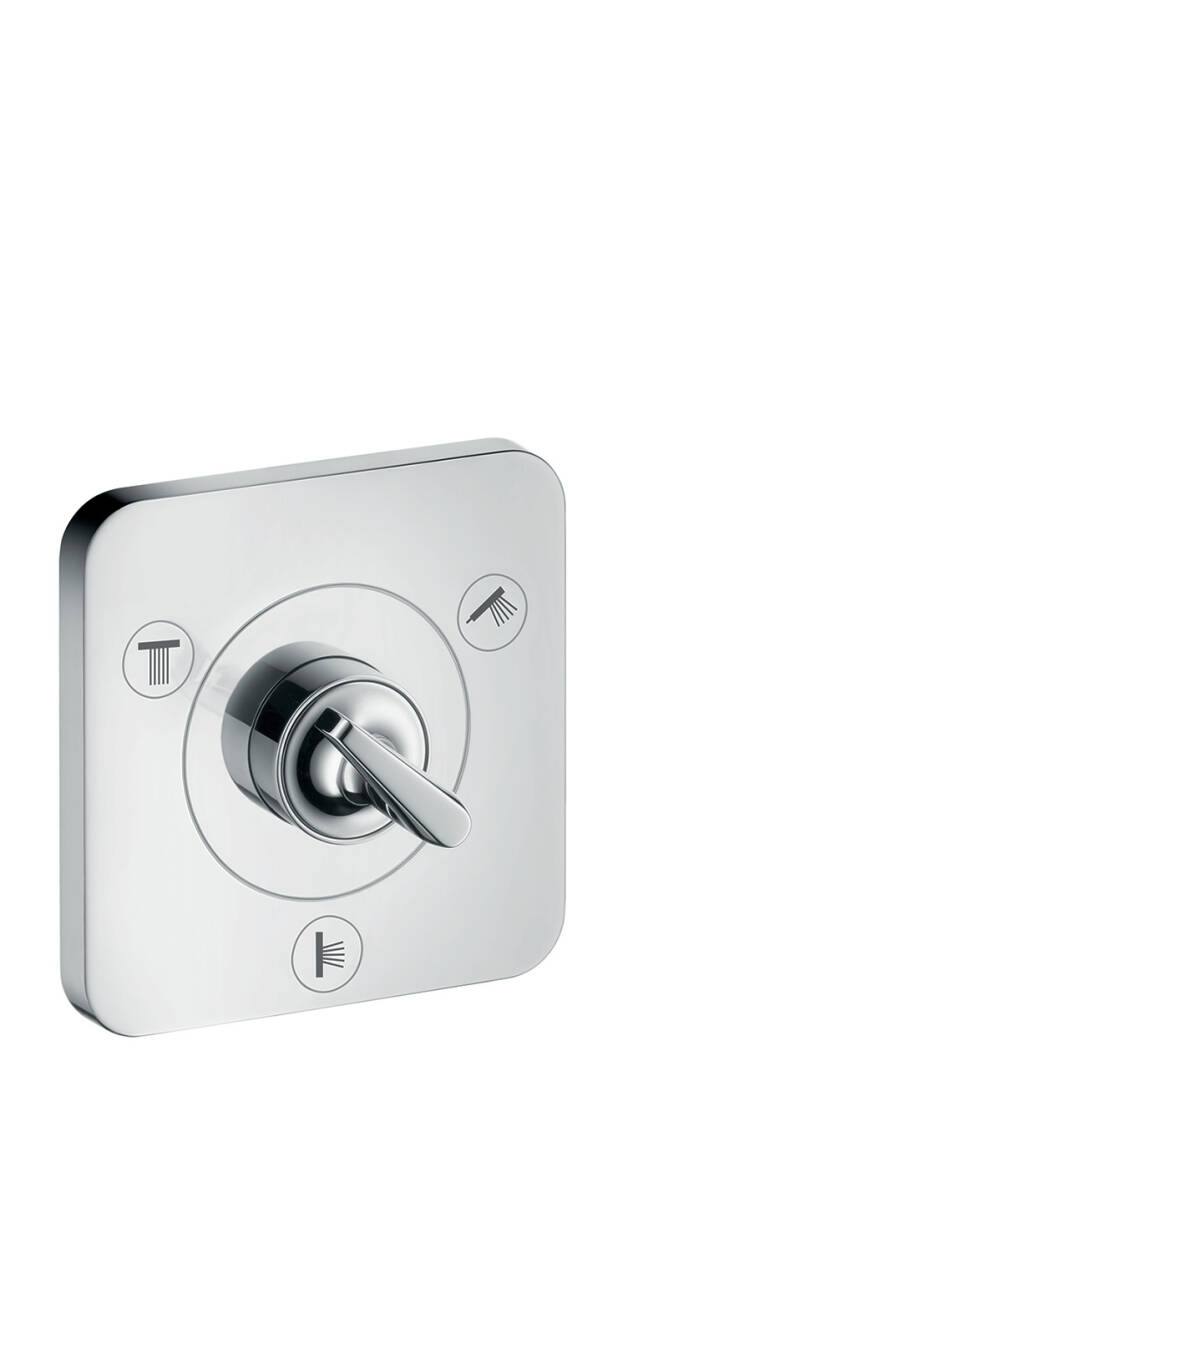 Shut-off/ diverter valve Trio/ Quattro 120/120 for concealed installation, Chrome, 36772000